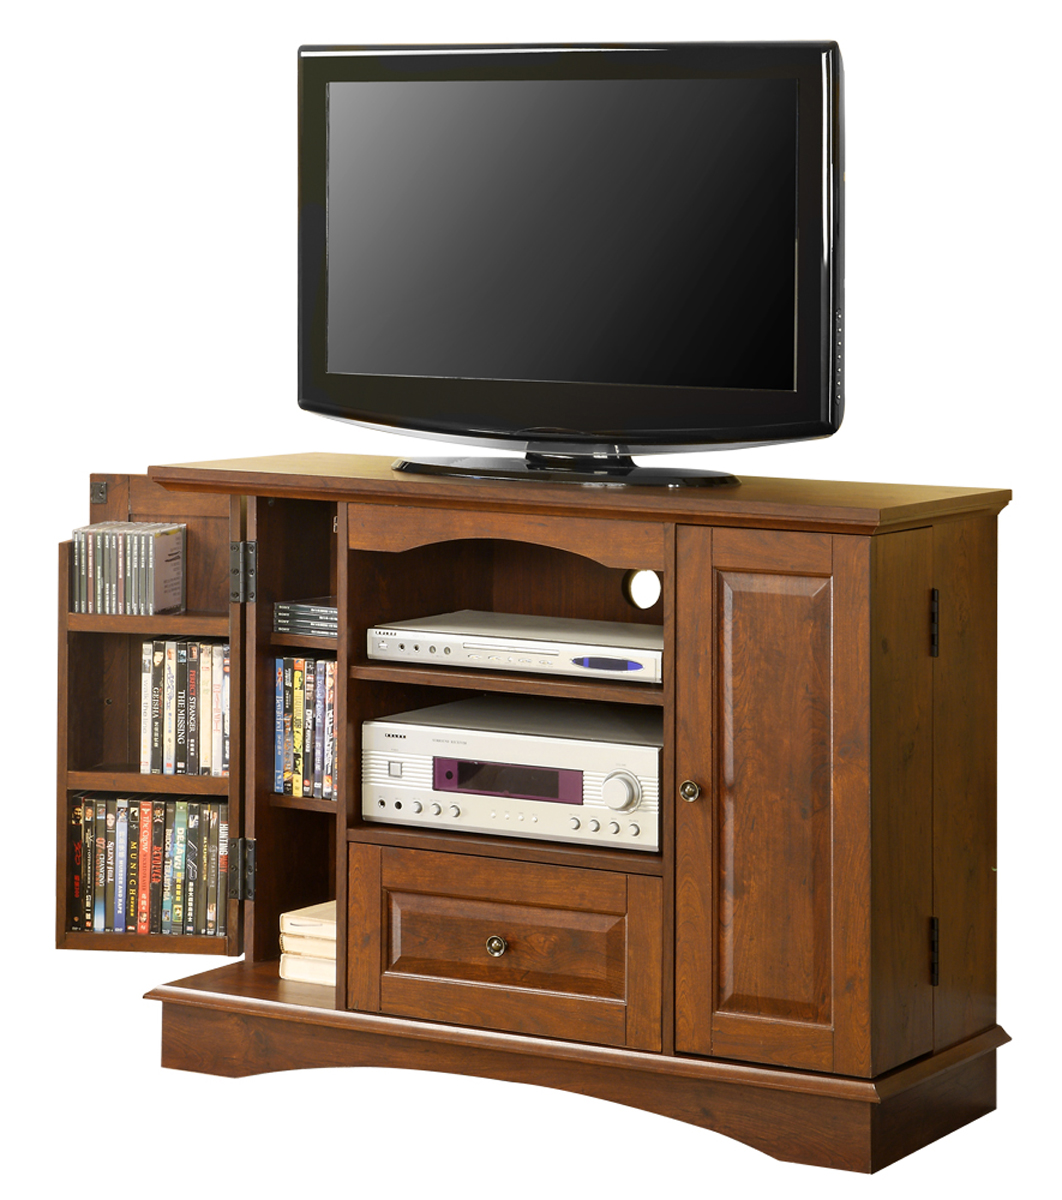 42 inch wood tv stand with media storage in tv stands. Black Bedroom Furniture Sets. Home Design Ideas